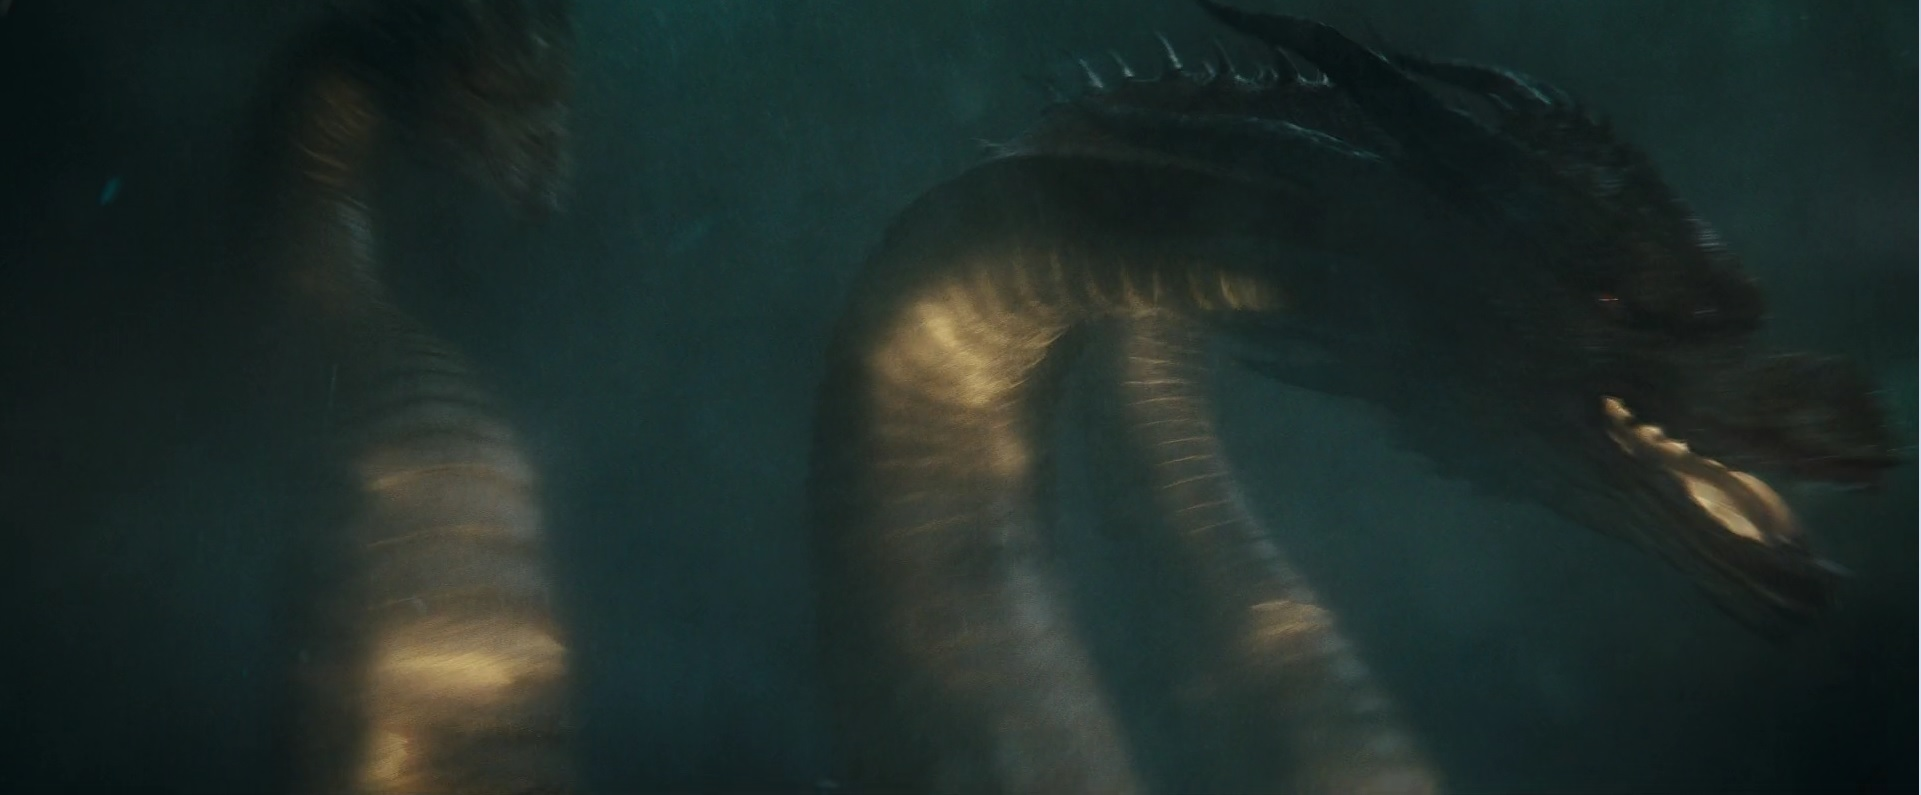 36 Ghidorah face close up.jpg